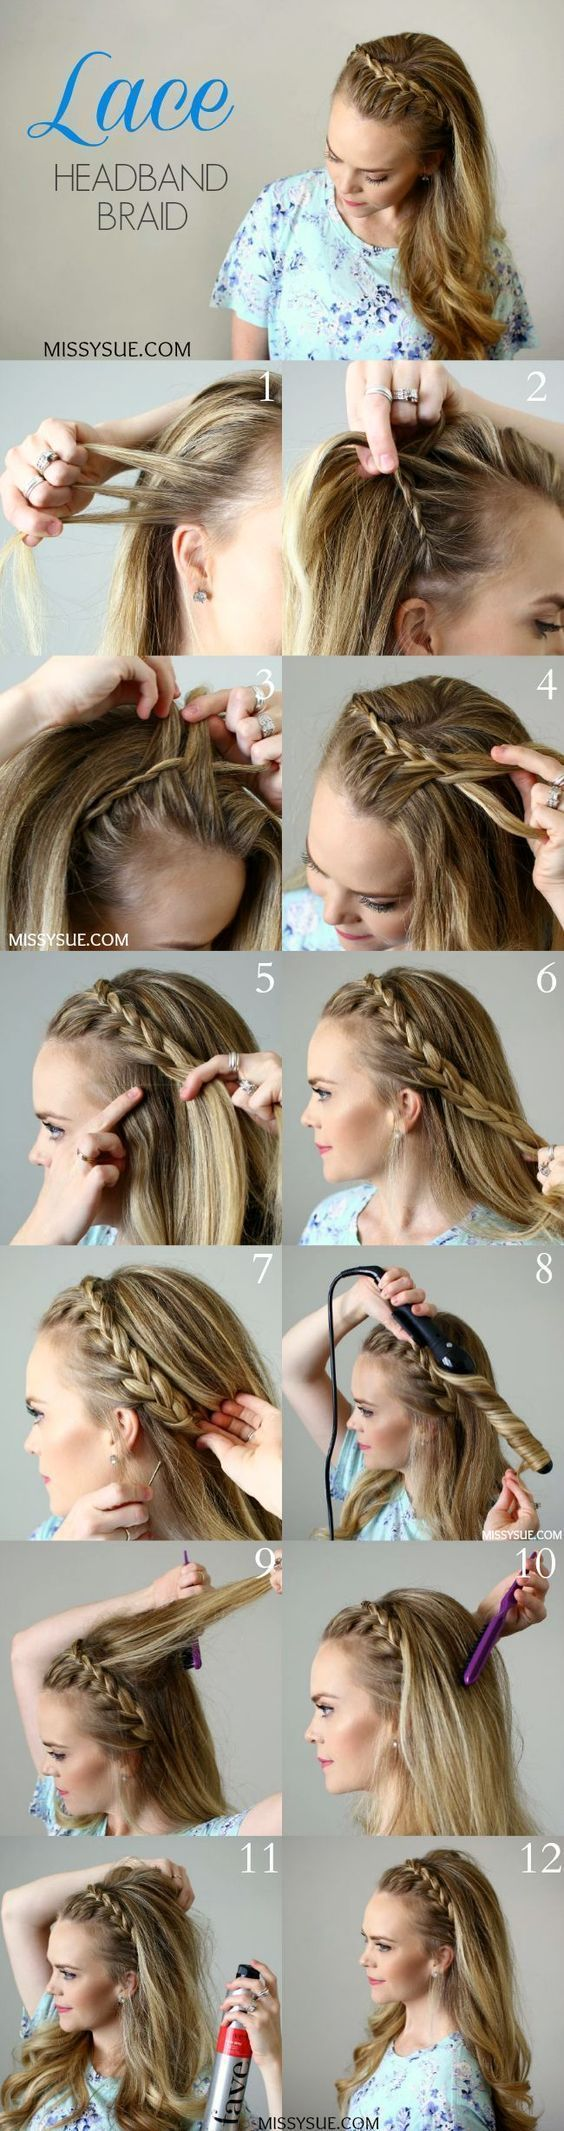 25 Great Braided Hairstyles Worth Mastering